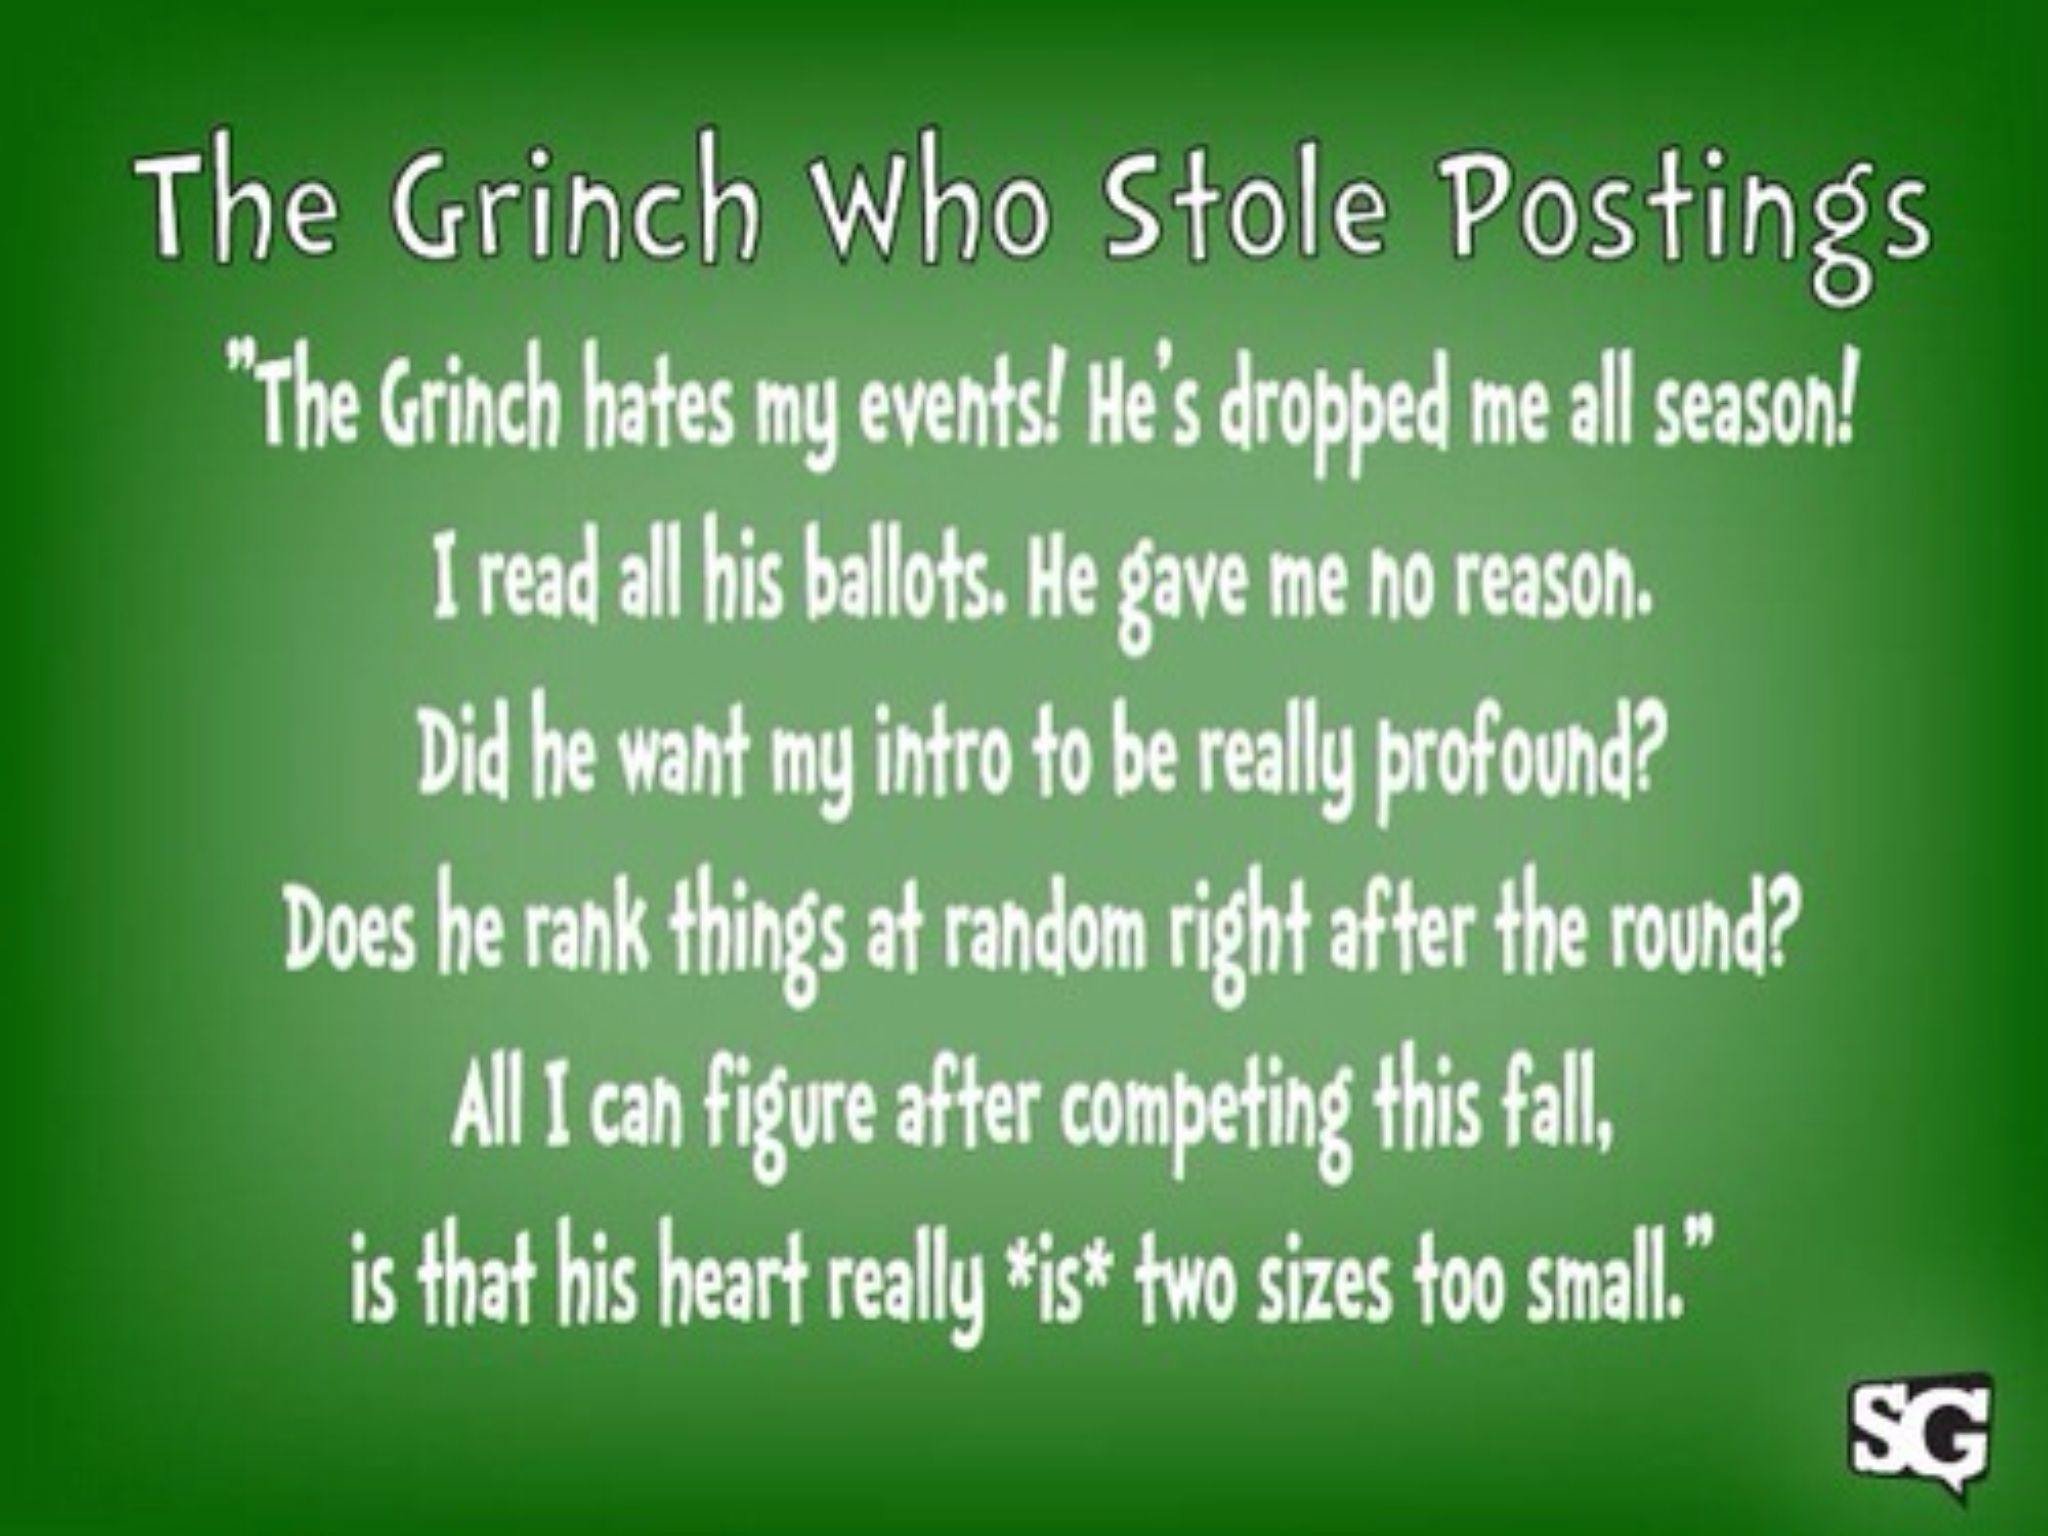 The Grinch Who Stole Postings